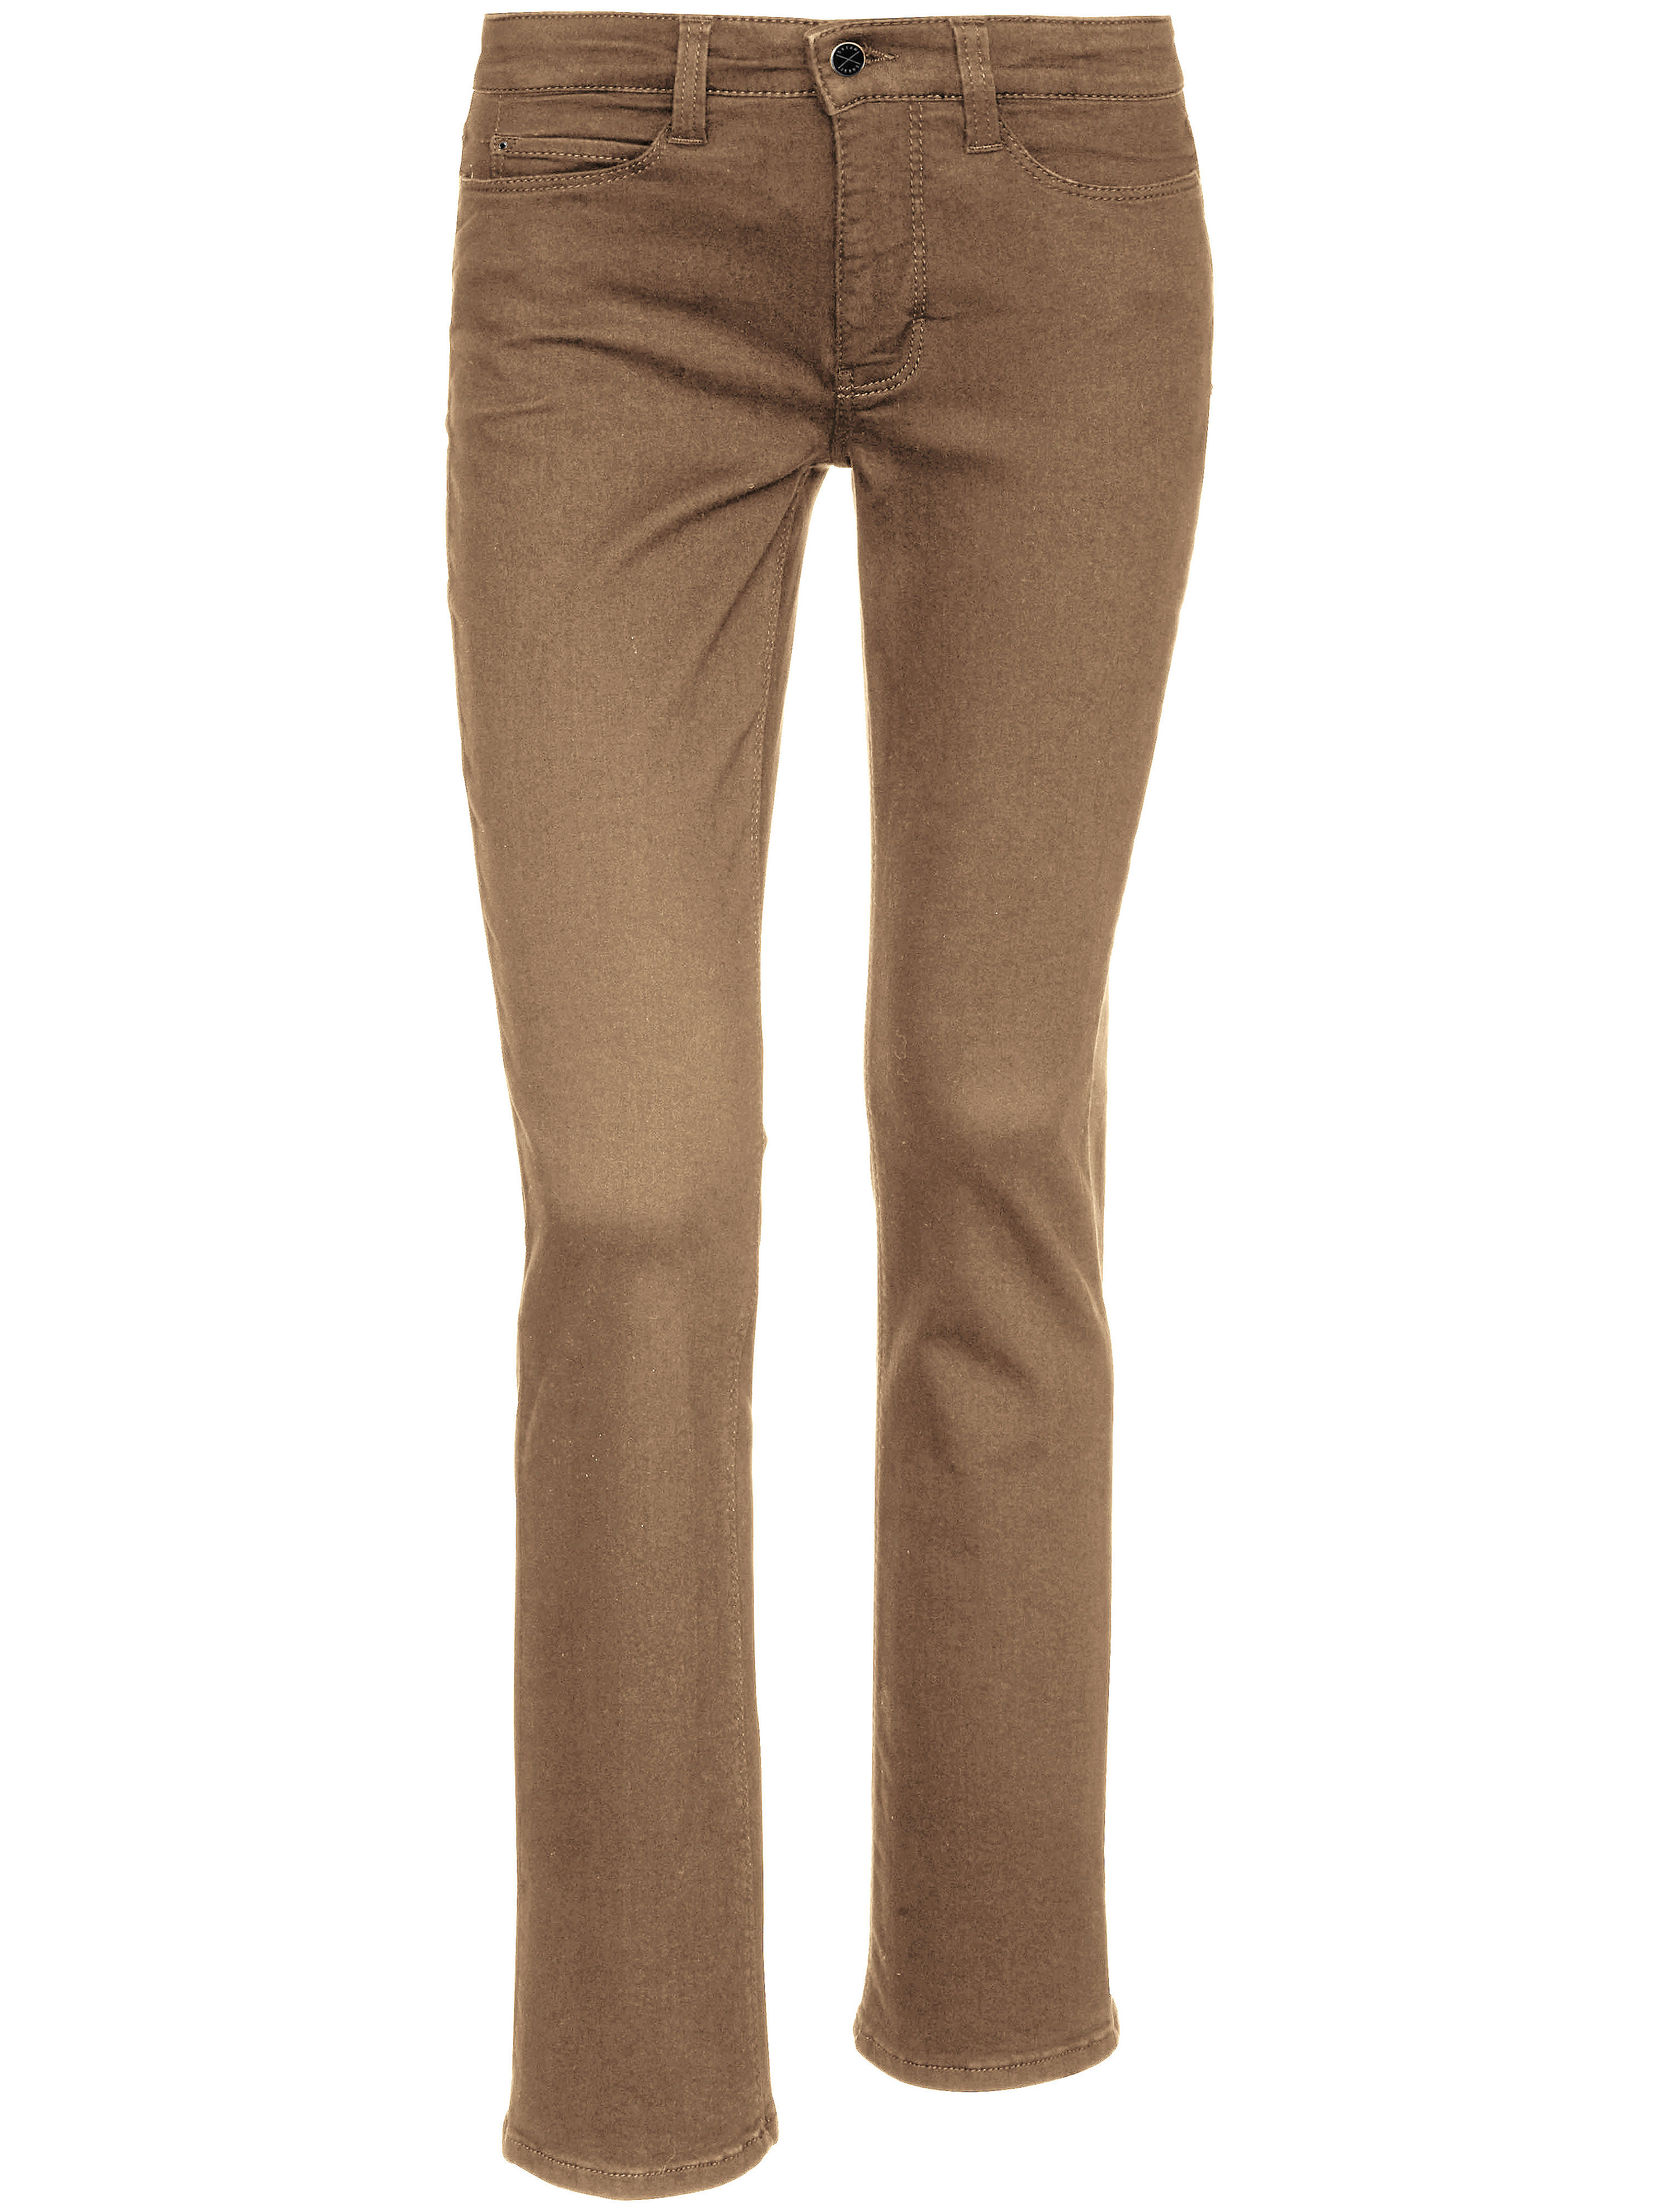 Le jean Dream Skinny  Mac beige taille 44